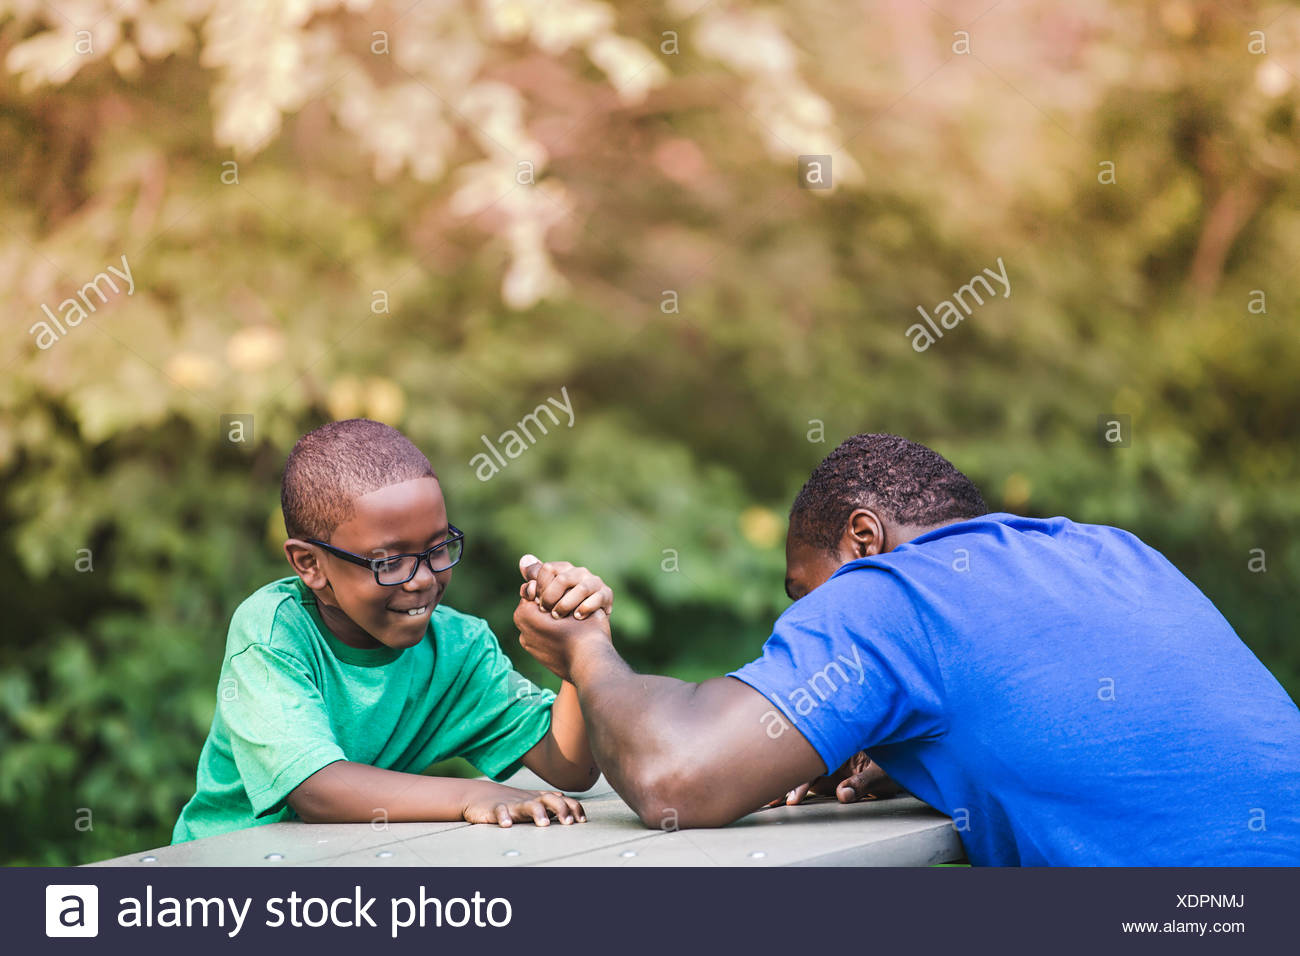 Father arm wrestling with son at parkland eco camp - Stock Image